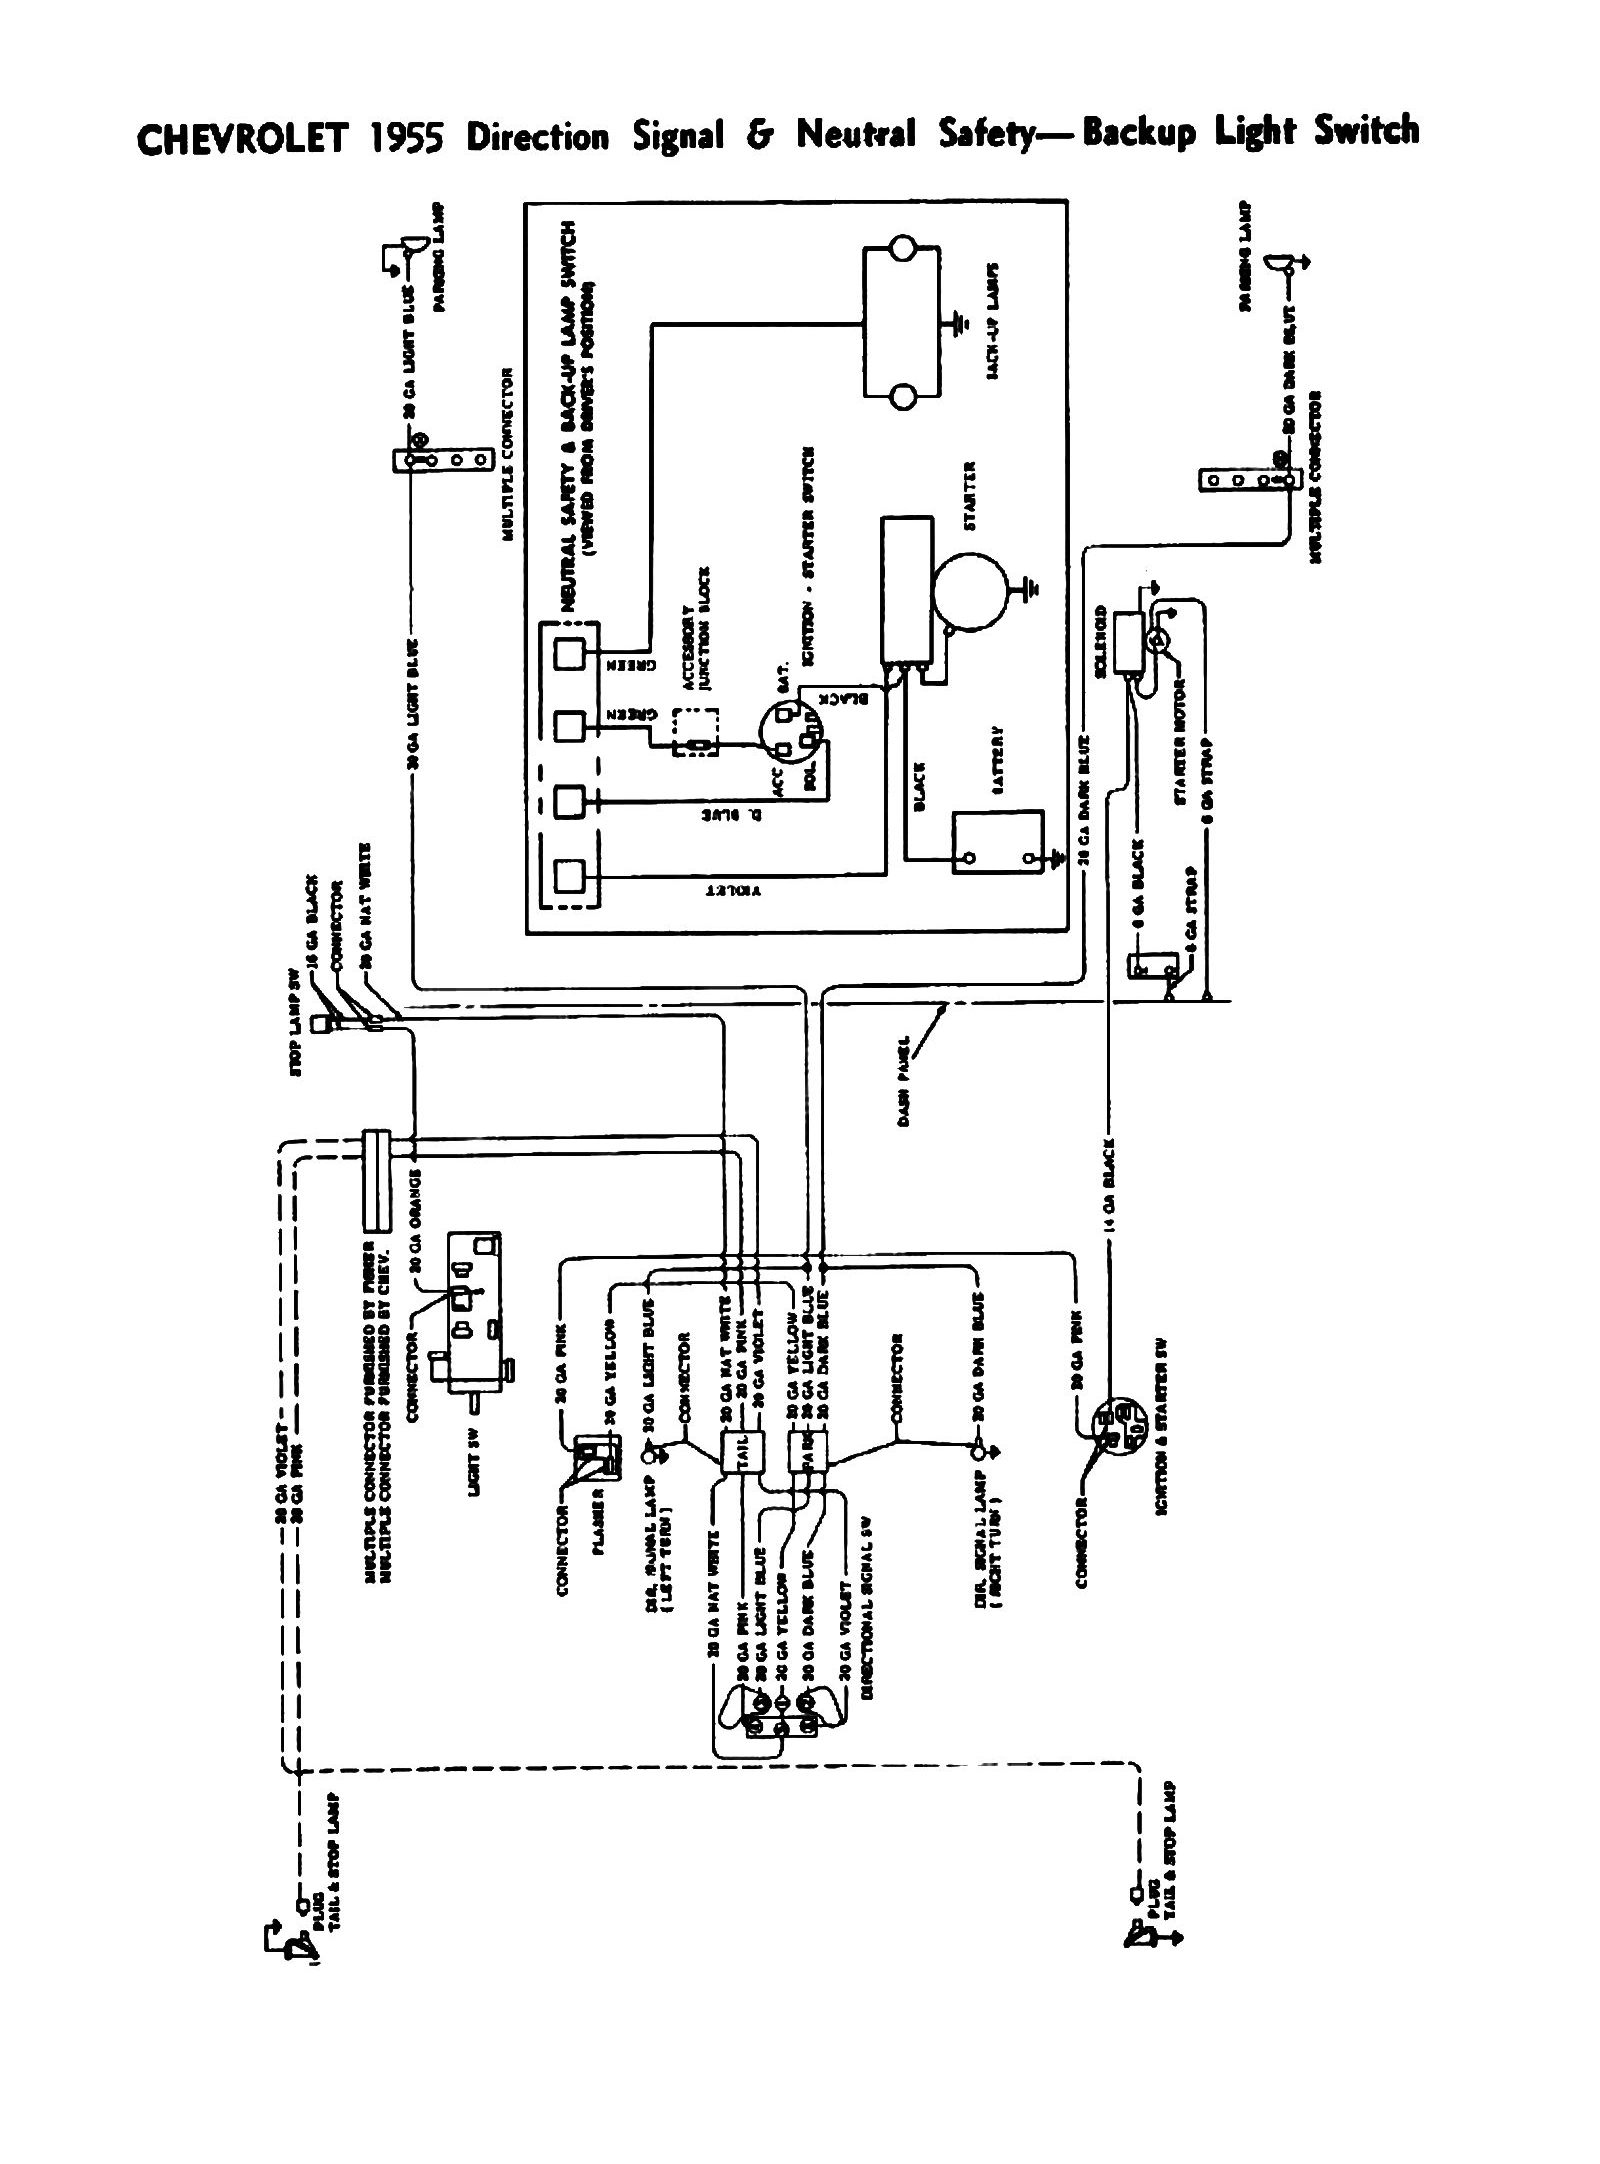 Chevy Wiring Diagram 36 | Wiring Diagram on 1939 ford wiring diagram, 63 chevy wiring diagram, 49 ford wiring diagram,